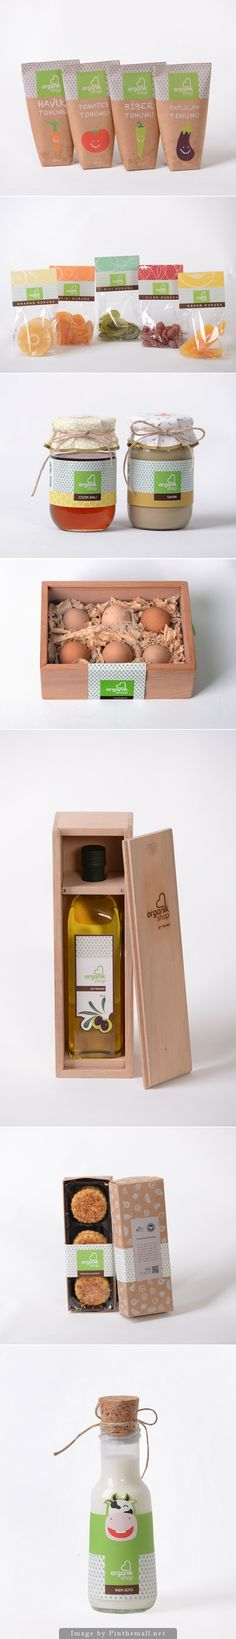 Like the bottle in the wooden box. Gives a whole new level to the experience of the product.